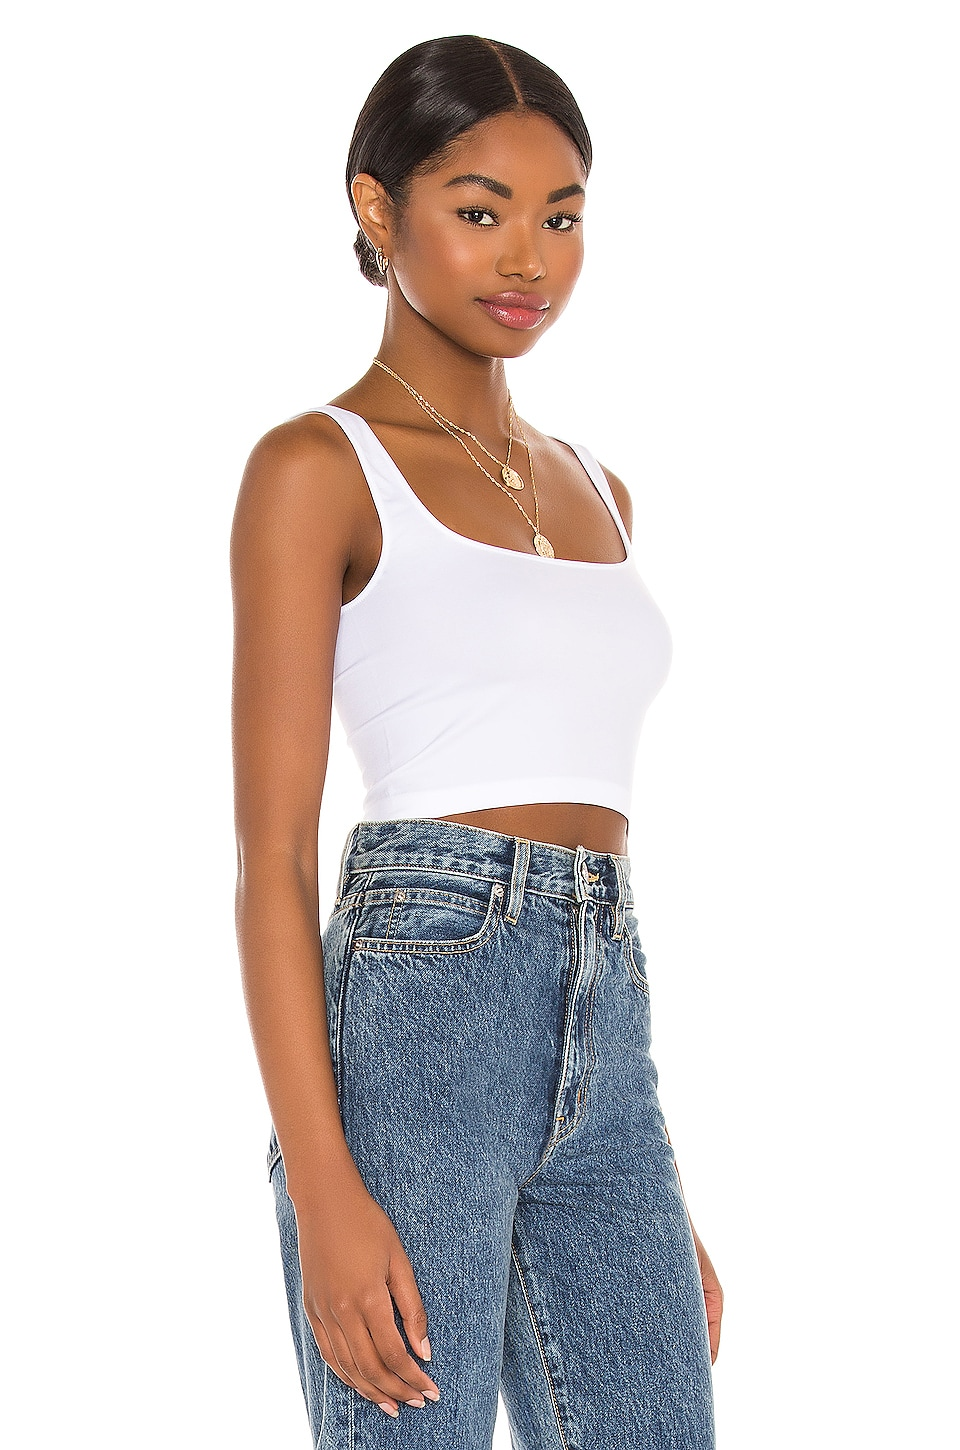 Scoop Neck Crop Top, view 2, click to view large image.